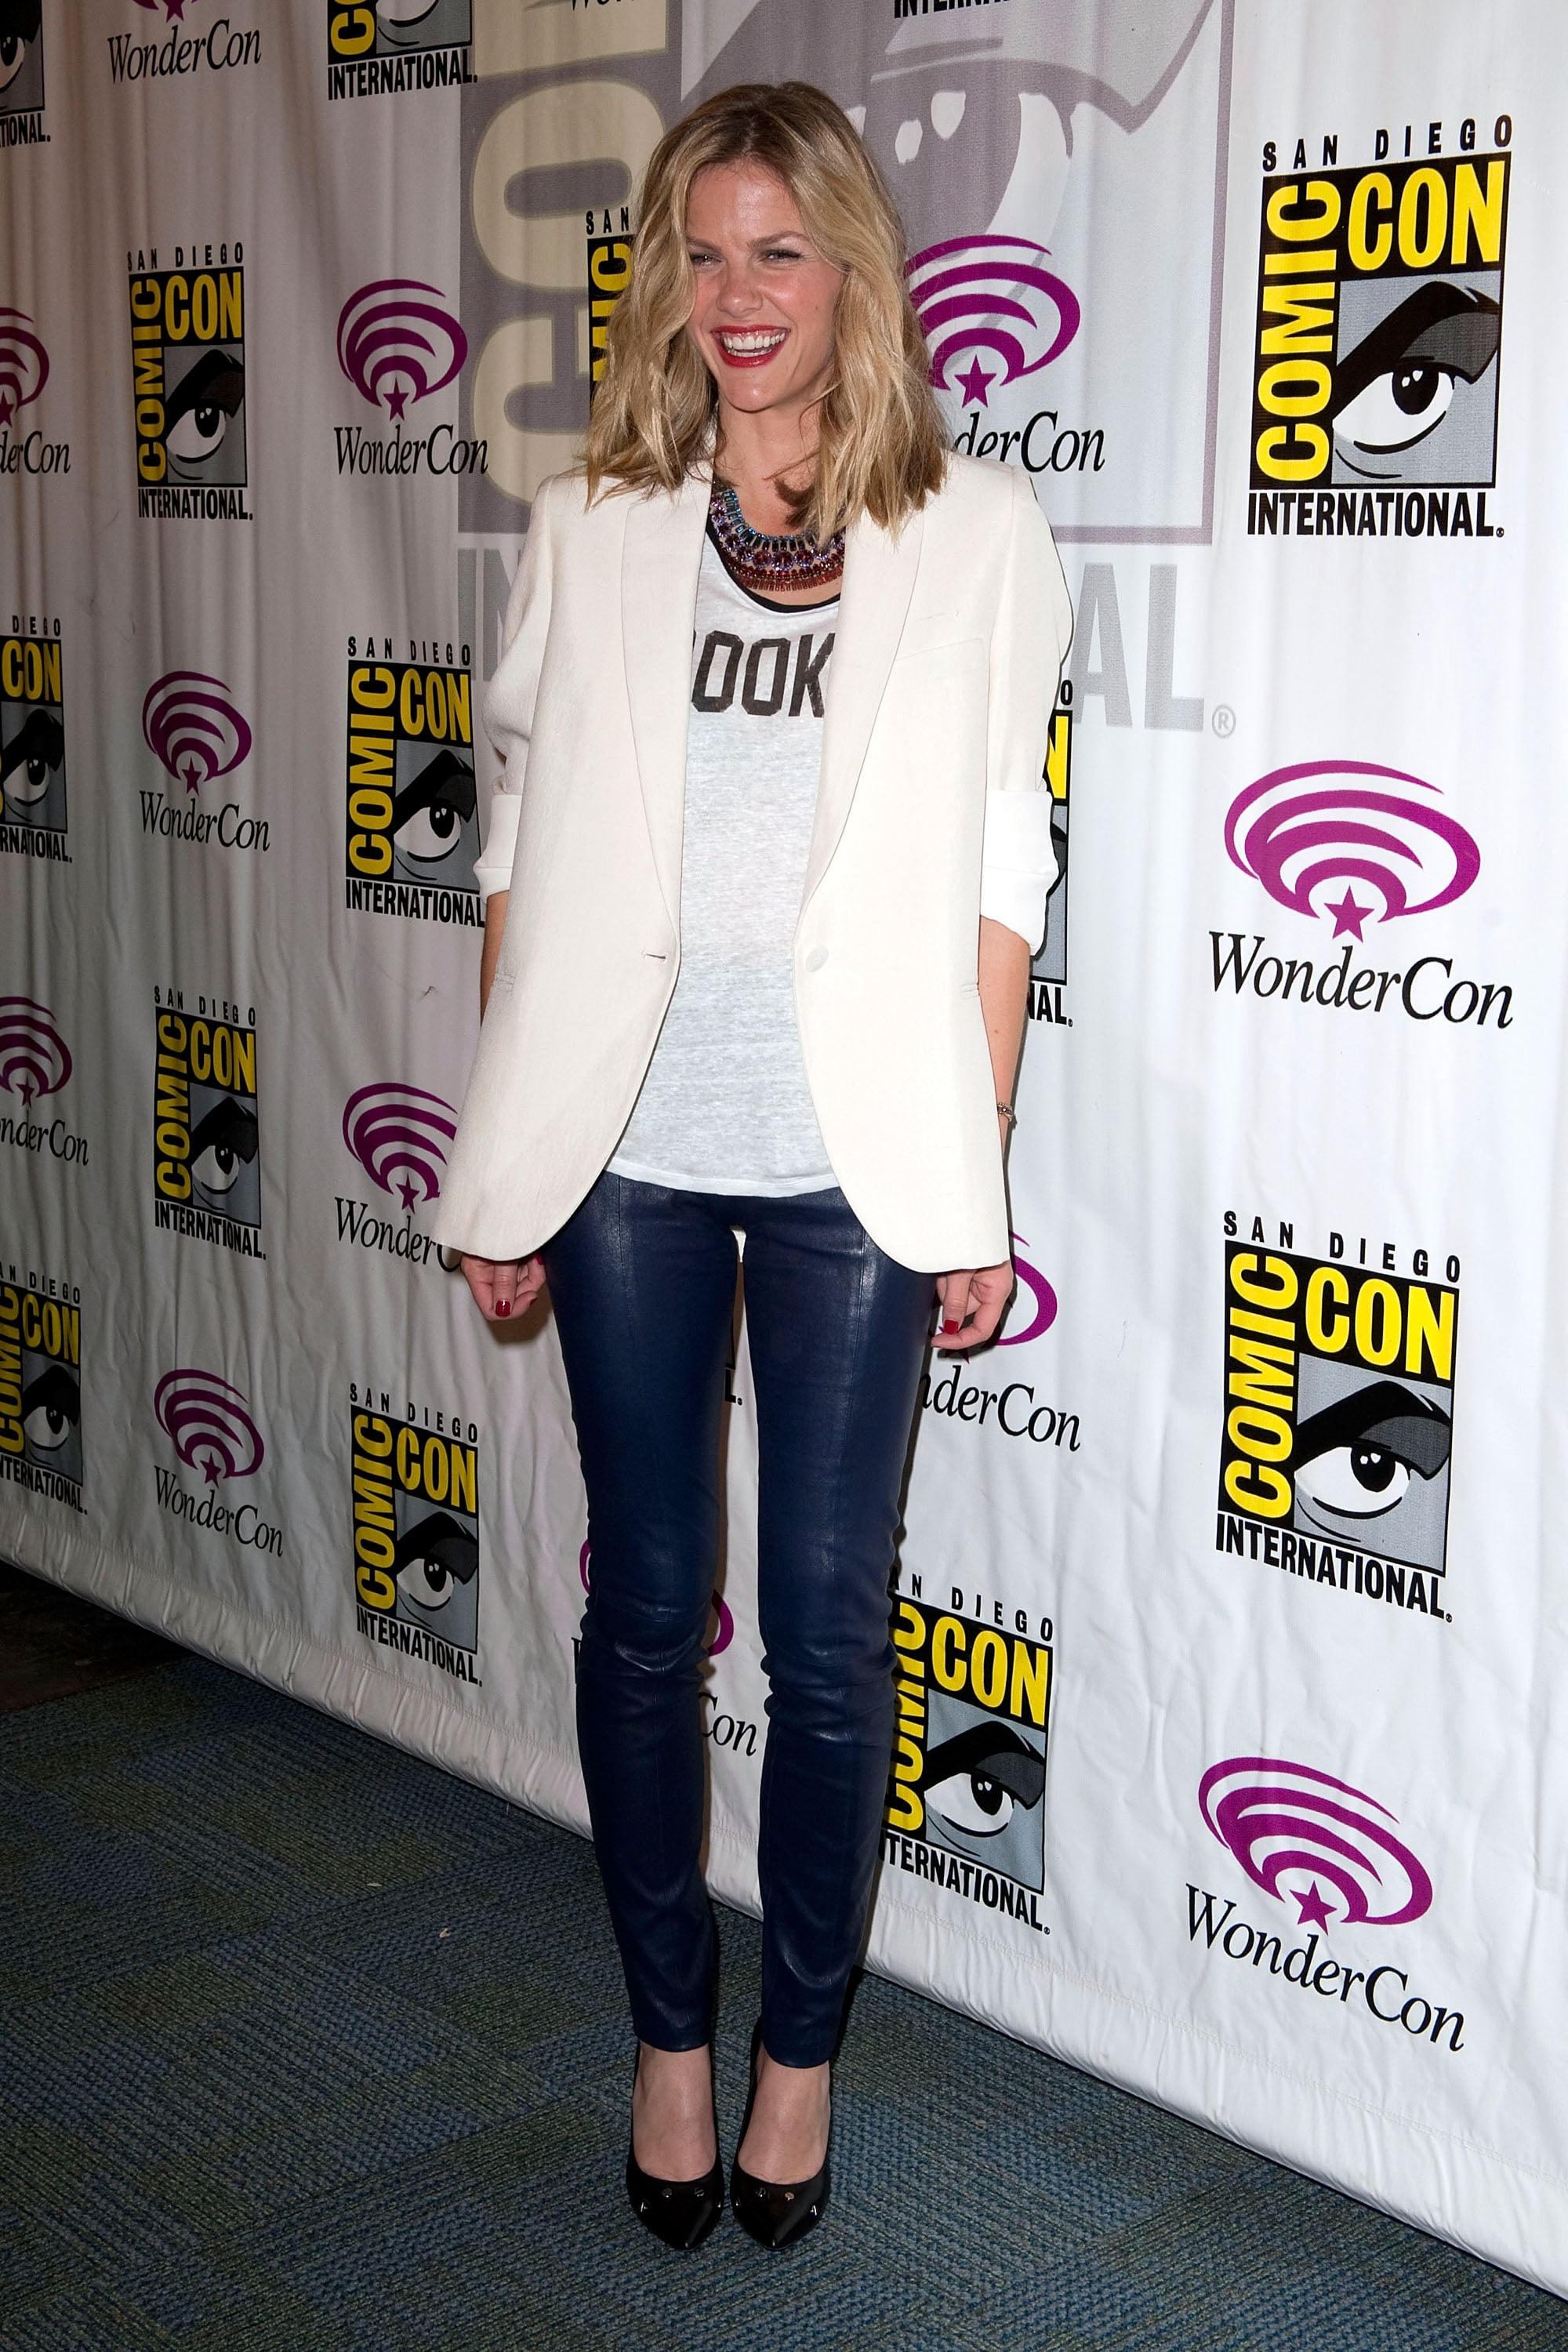 Brooklyn Decker kicked off the promotional tour in a crisp white blazer, leather pants, and statement jewels at Comic-Con in March.